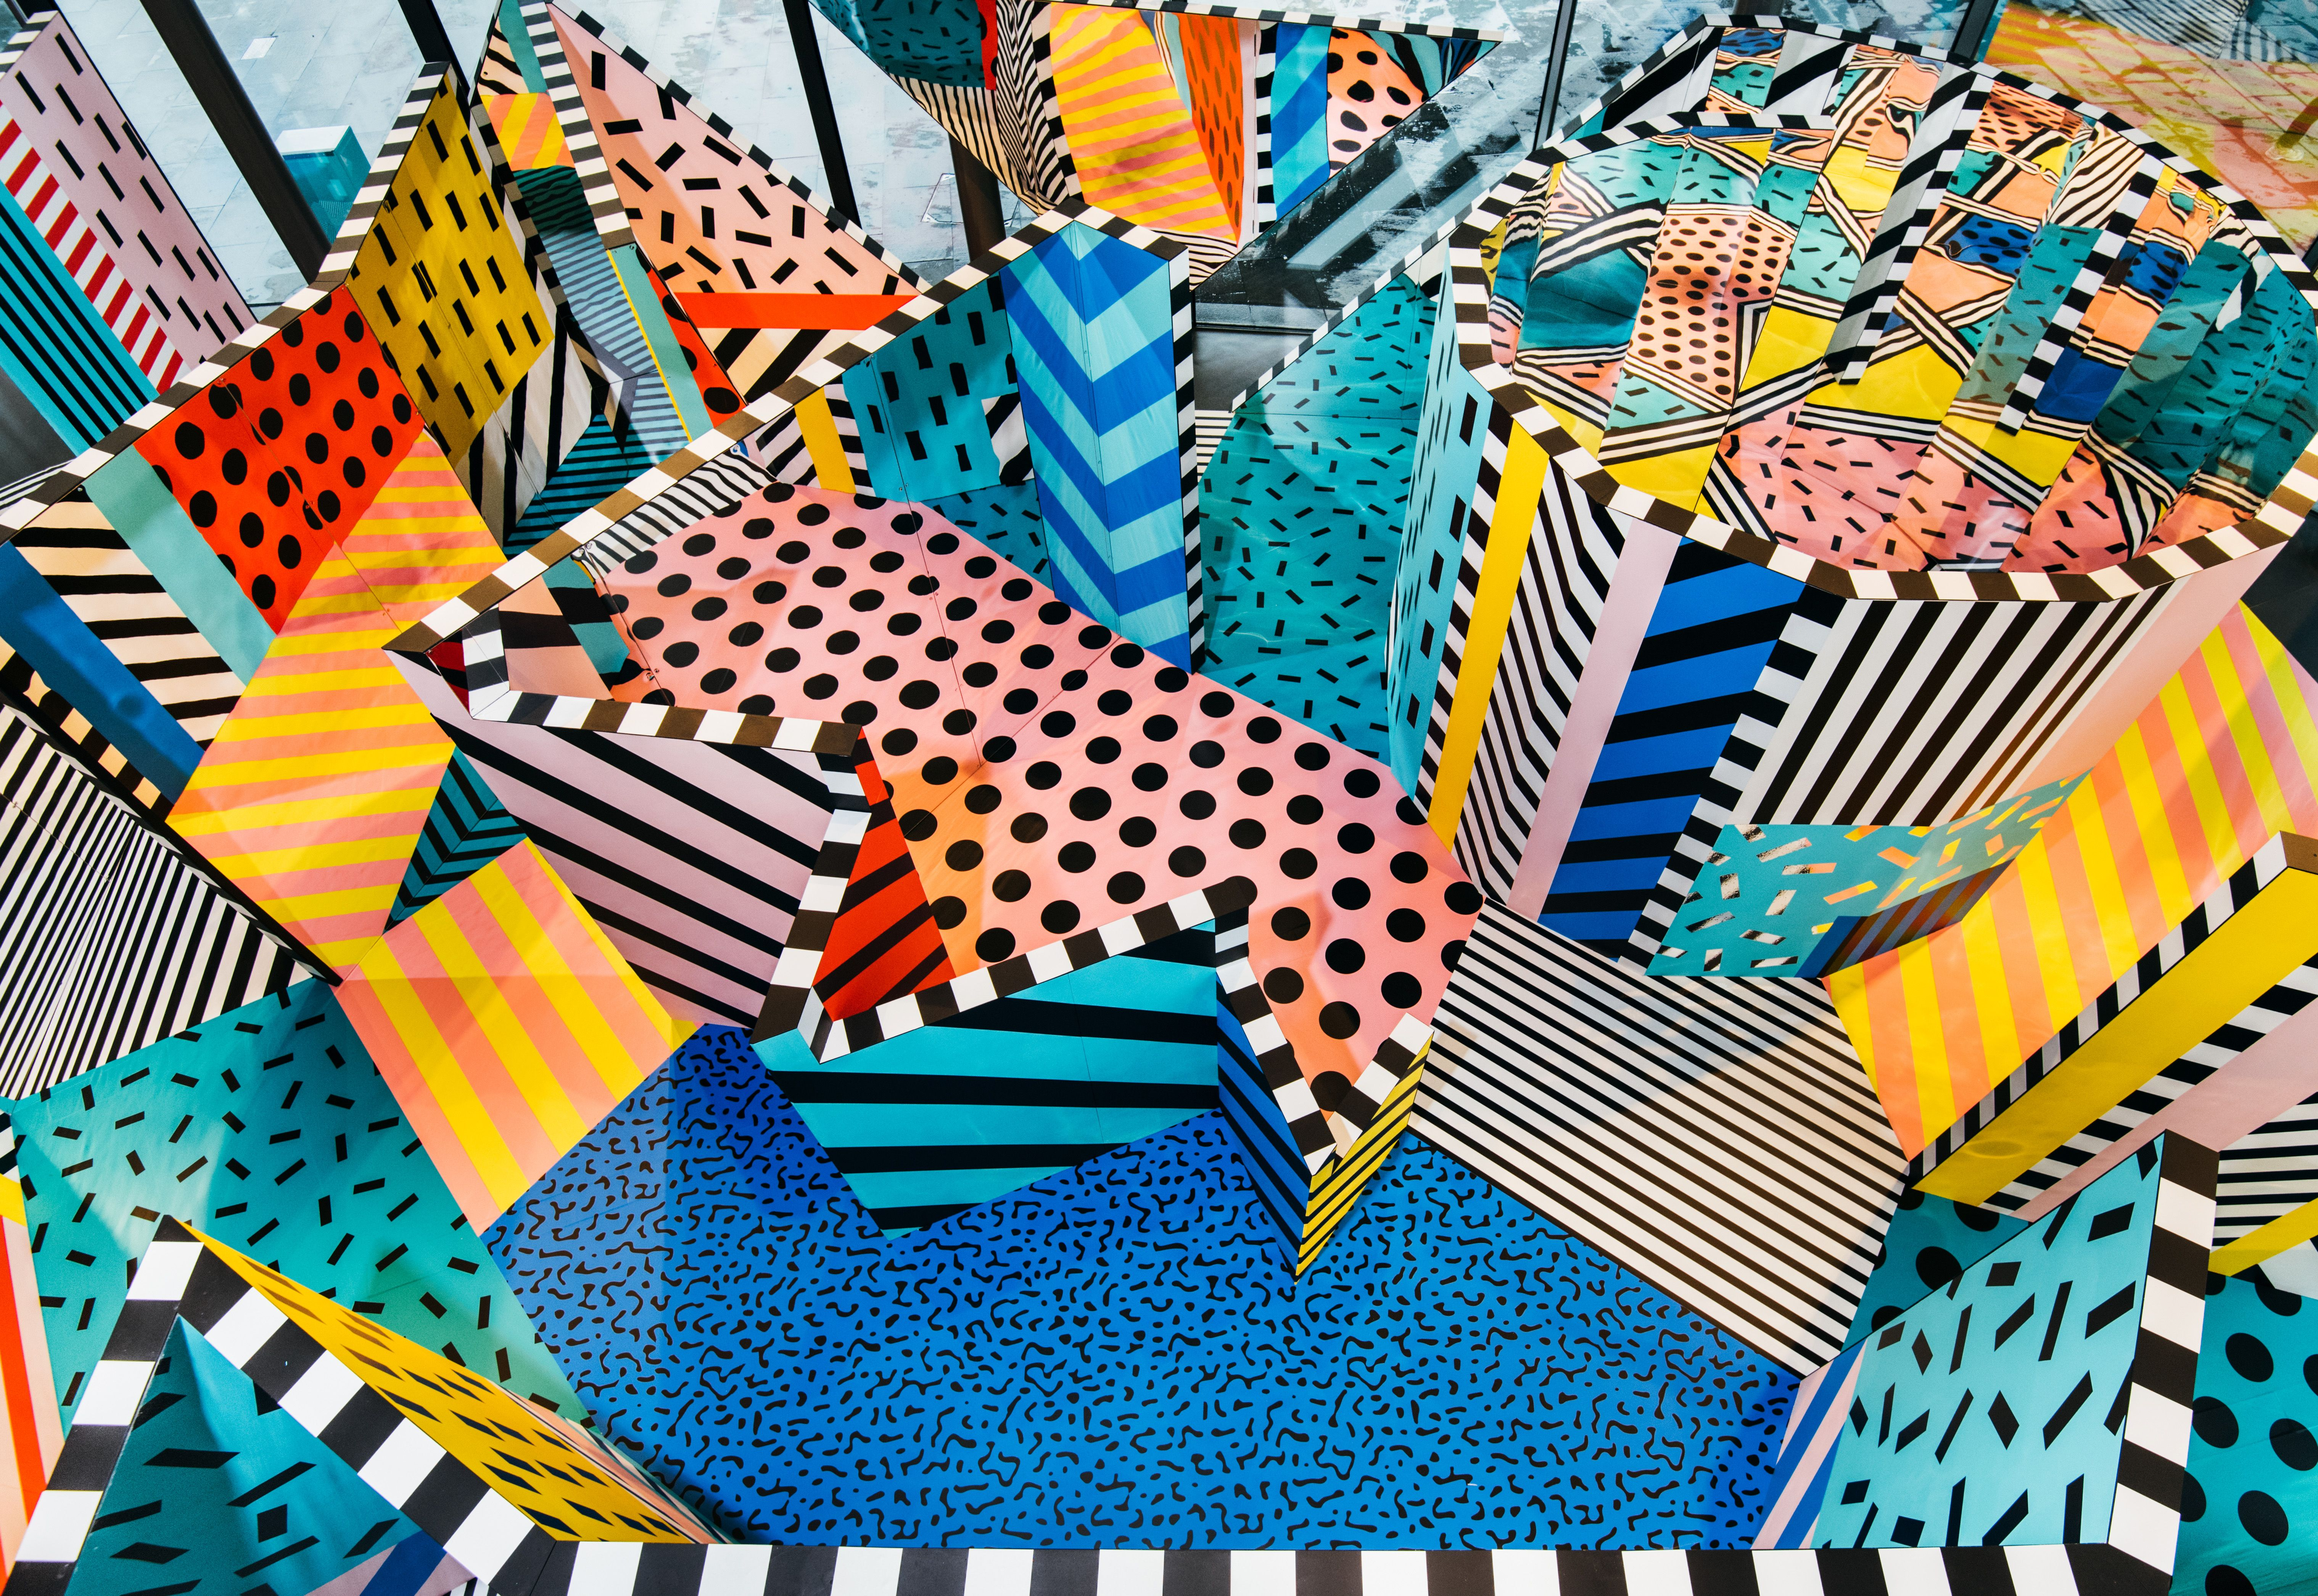 Colourful Labyrinth by Camille Walala Memphis design